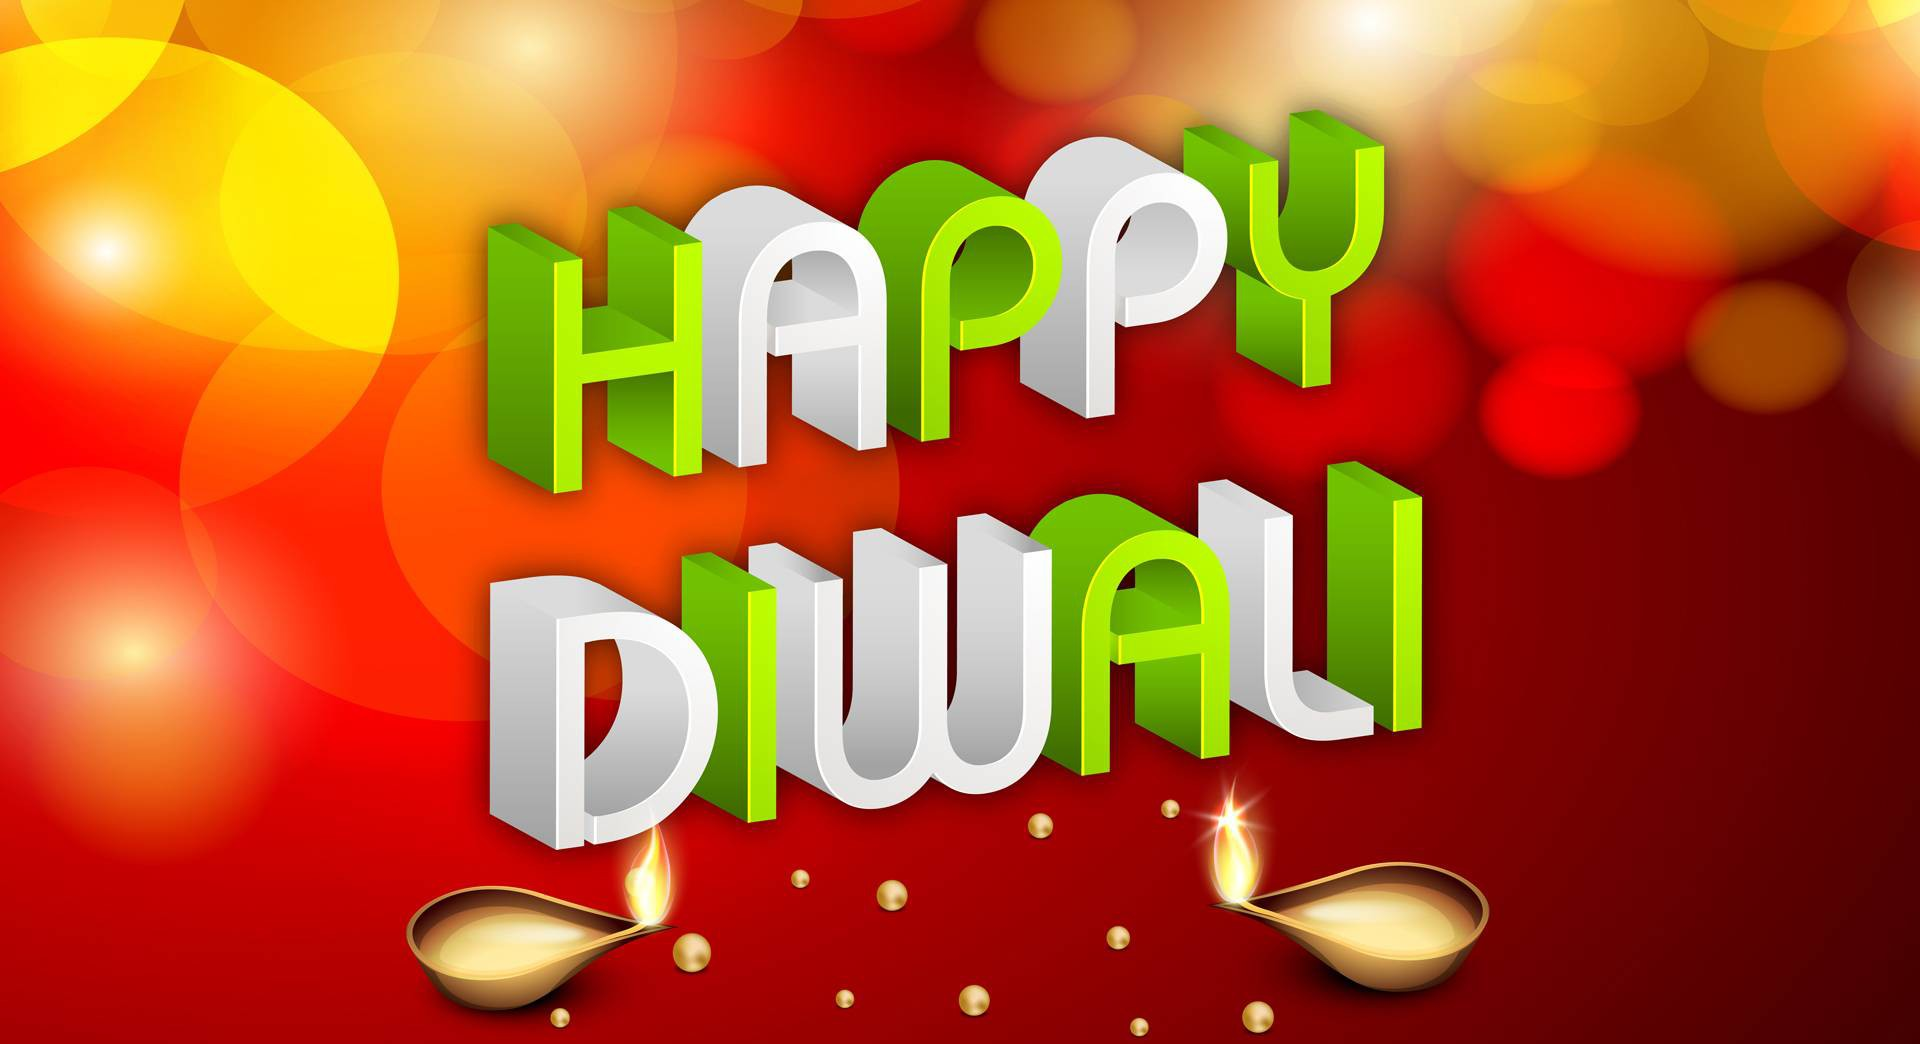 Lord Ganesha Animated Wallpapers Latest Happy Diwali 2015 Wishes Messages Images Pictures